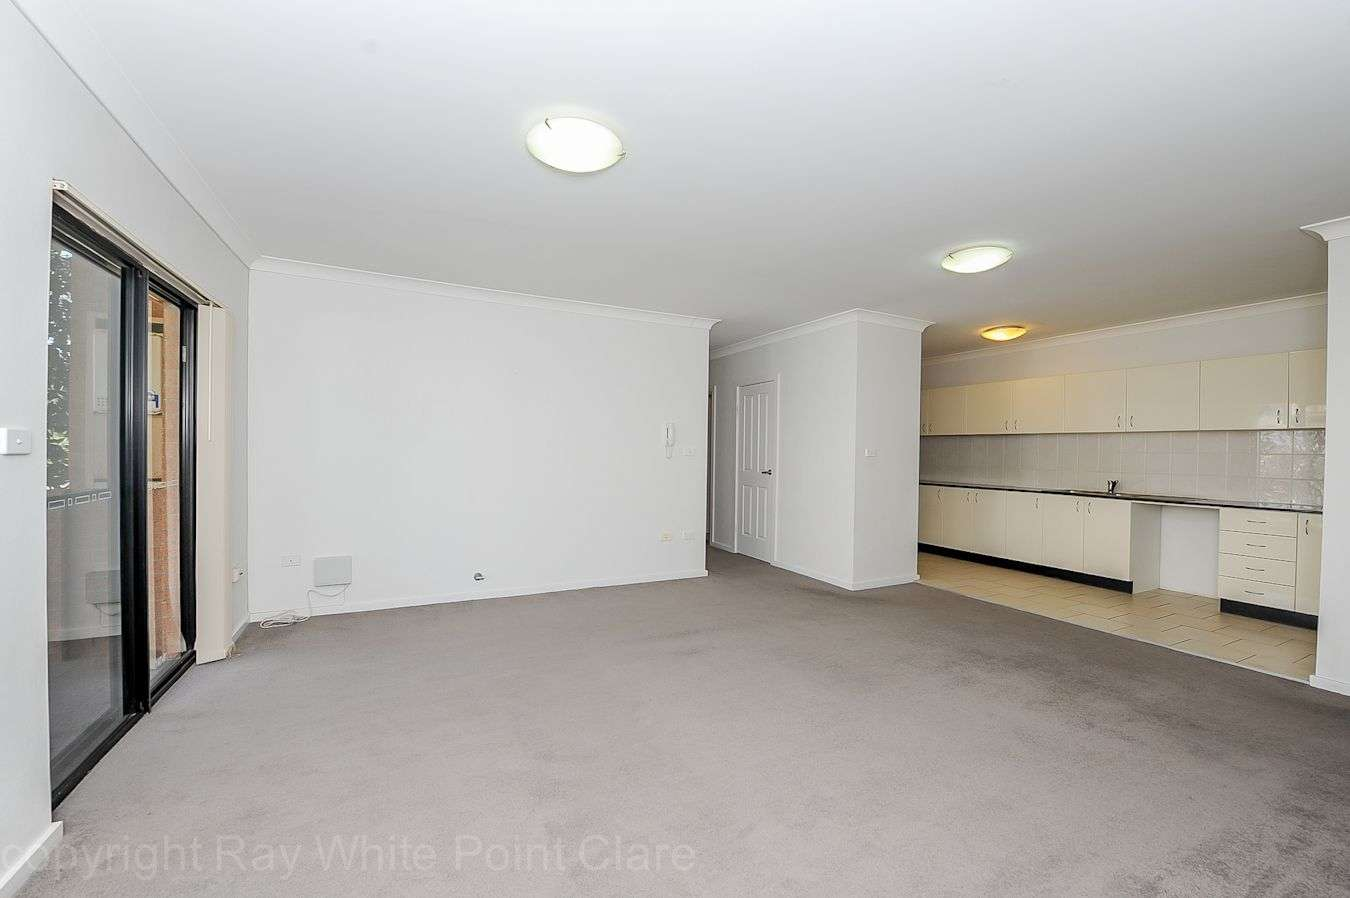 Main view of Homely apartment listing, Unit 39/19-21 Central Coast Highway, Gosford, NSW 2250